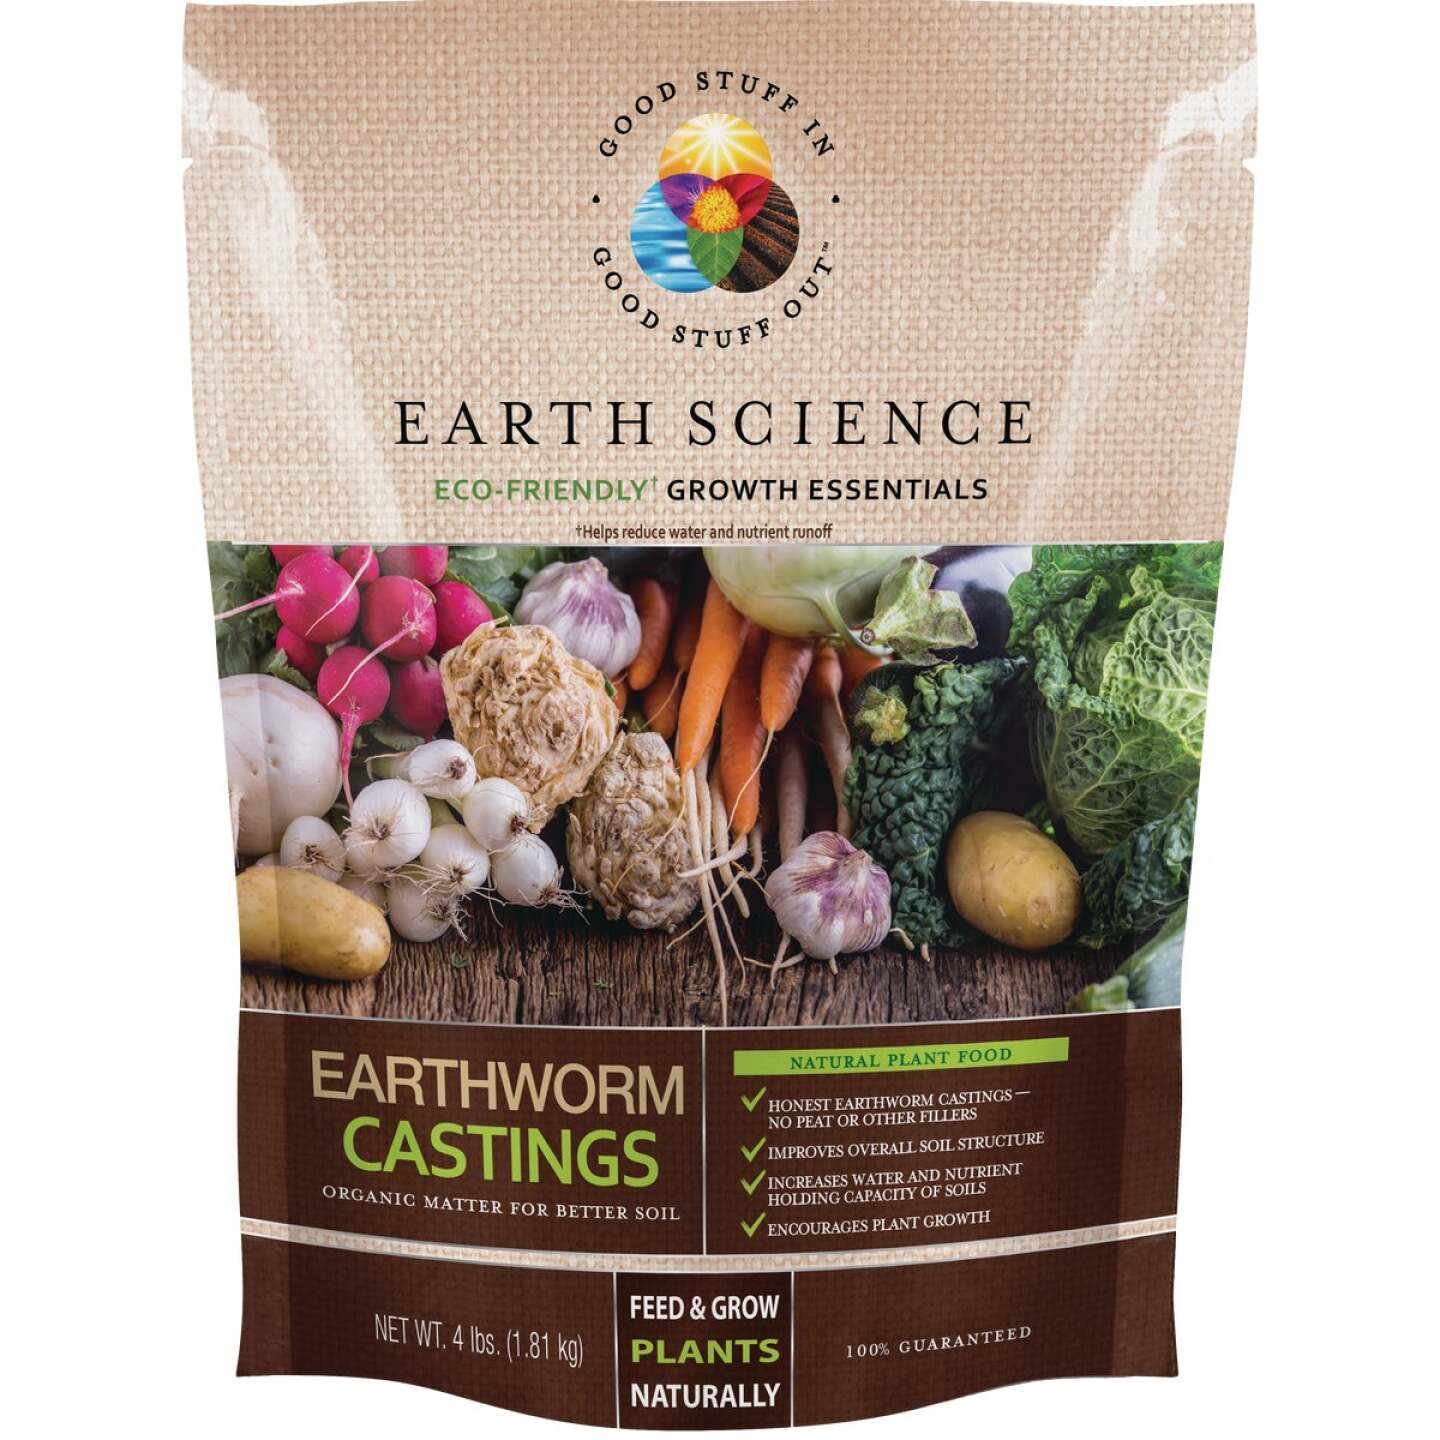 Earth Science 4 Lb. Earth Worm Castings Soil Conditioner Image 1